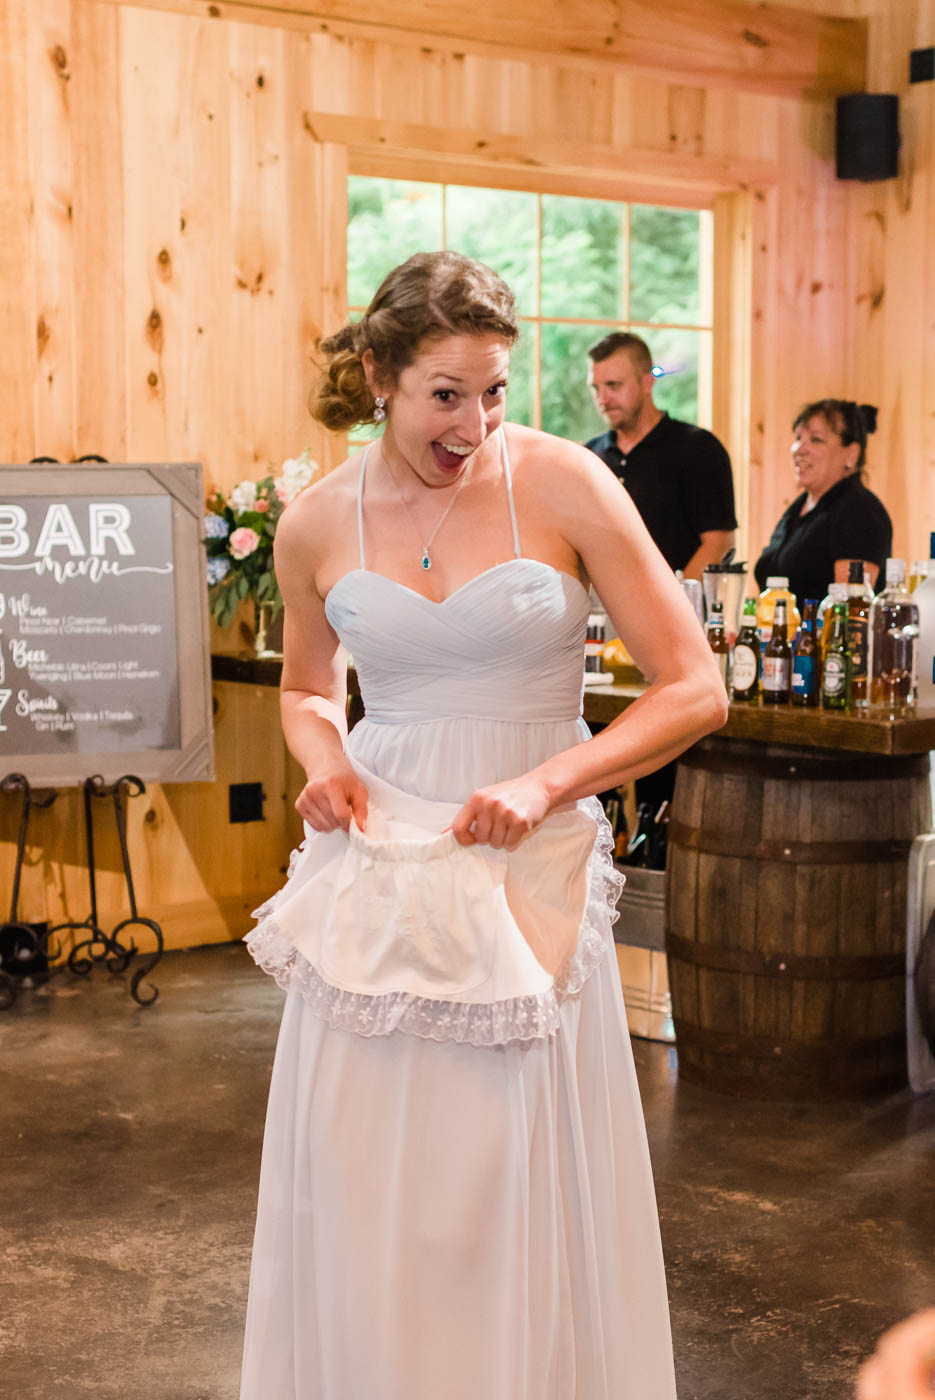 traditional Hungarian Dollar Dance apron worn by bridesmaid